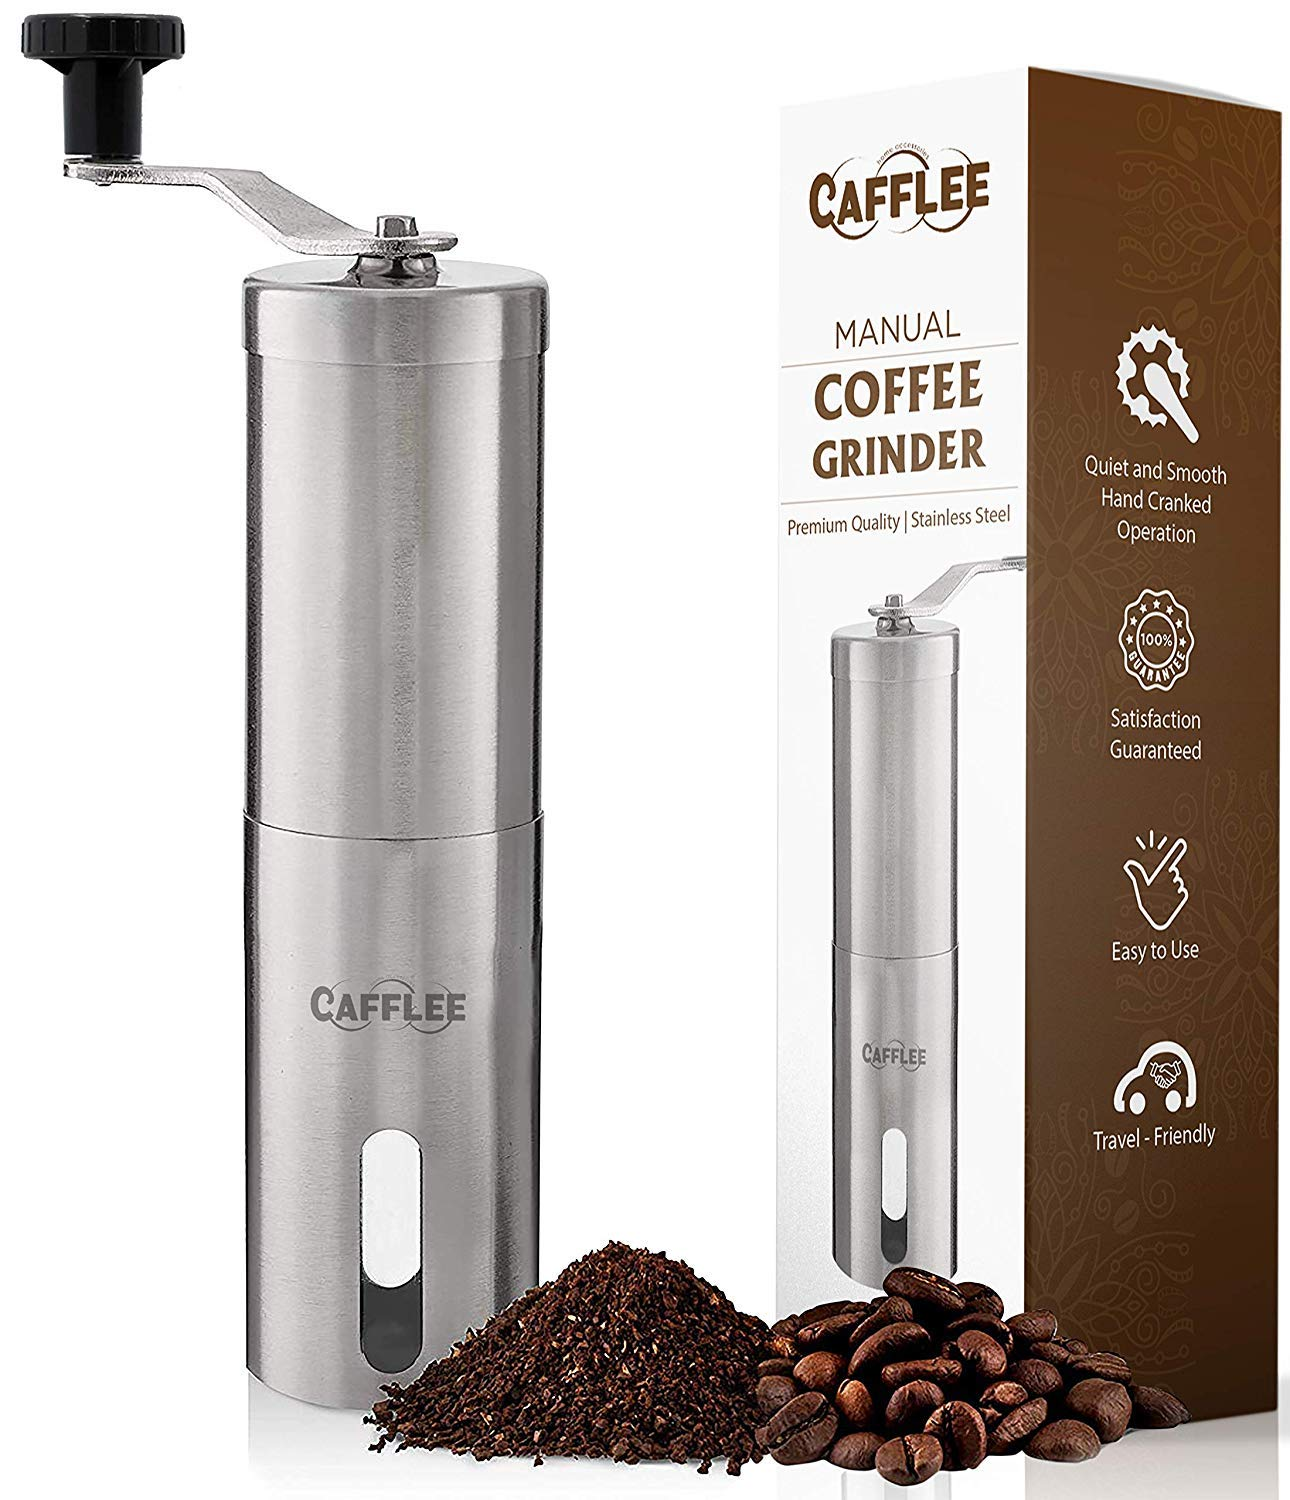 Manual Coffee Grinder by Cafflee, Conical Burr Mill for Precision Brewing, Premium Brushed Stainless Steel